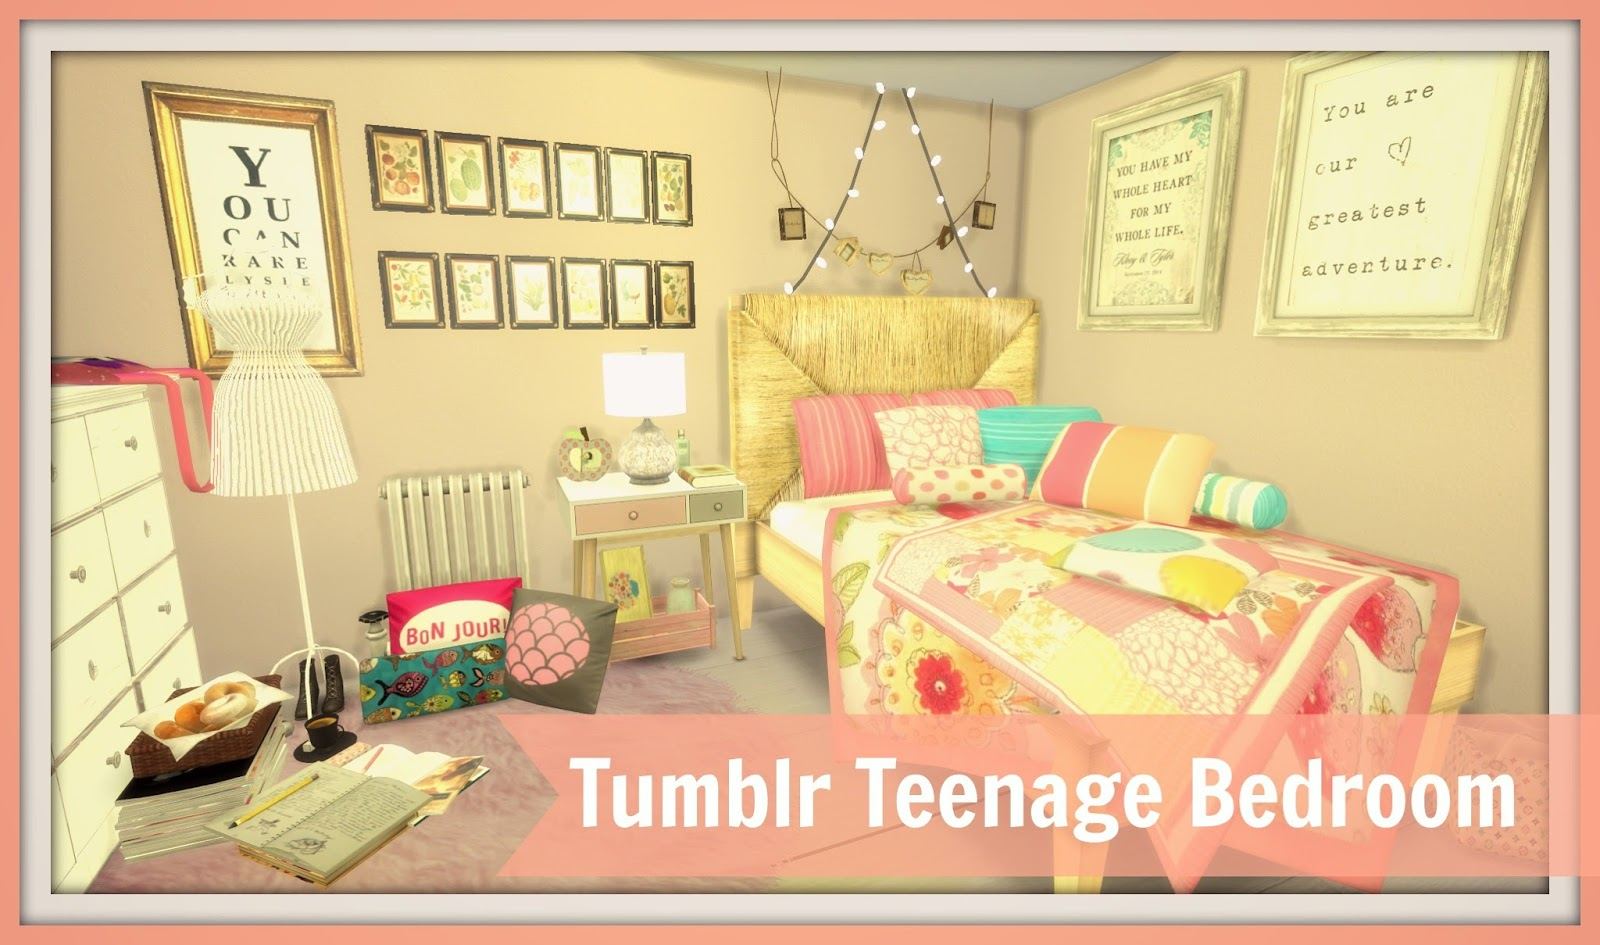 Sims 4 tumblr teenage bedroom dinha - Tumblr teenage bedroom ...